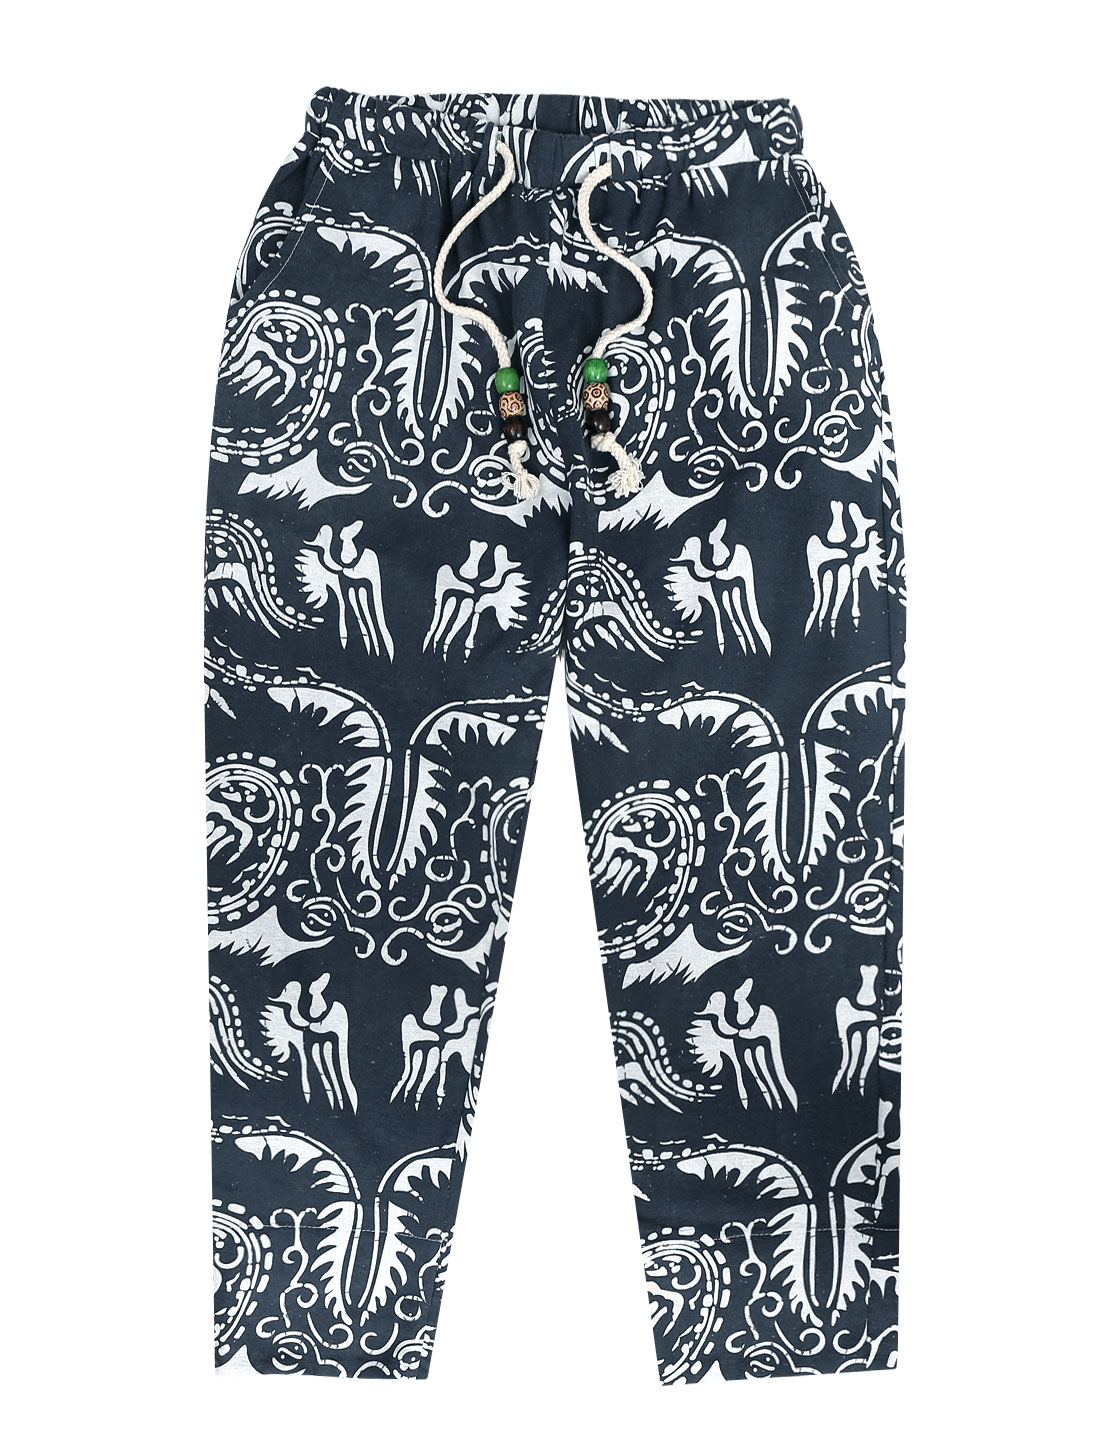 Men Stretchy Drawstring Waist Novelty Prints Cropped Pants White Navy Blue W30